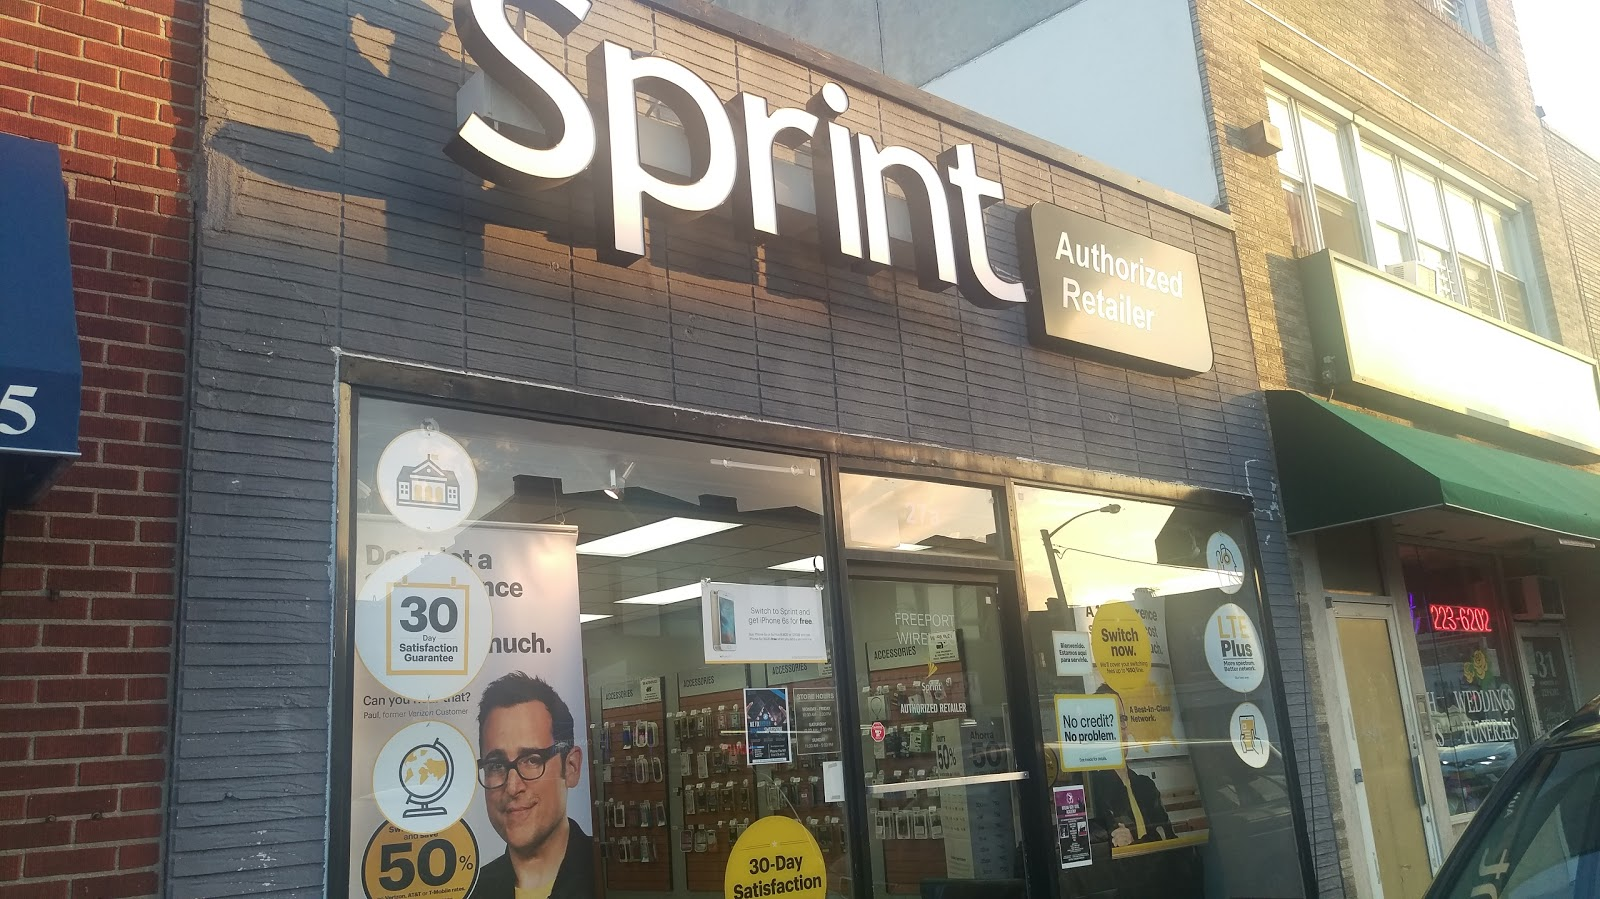 Photo of Sprint Store in Freeport City, New York, United States - 2 Picture of Point of interest, Establishment, Store, Electronics store